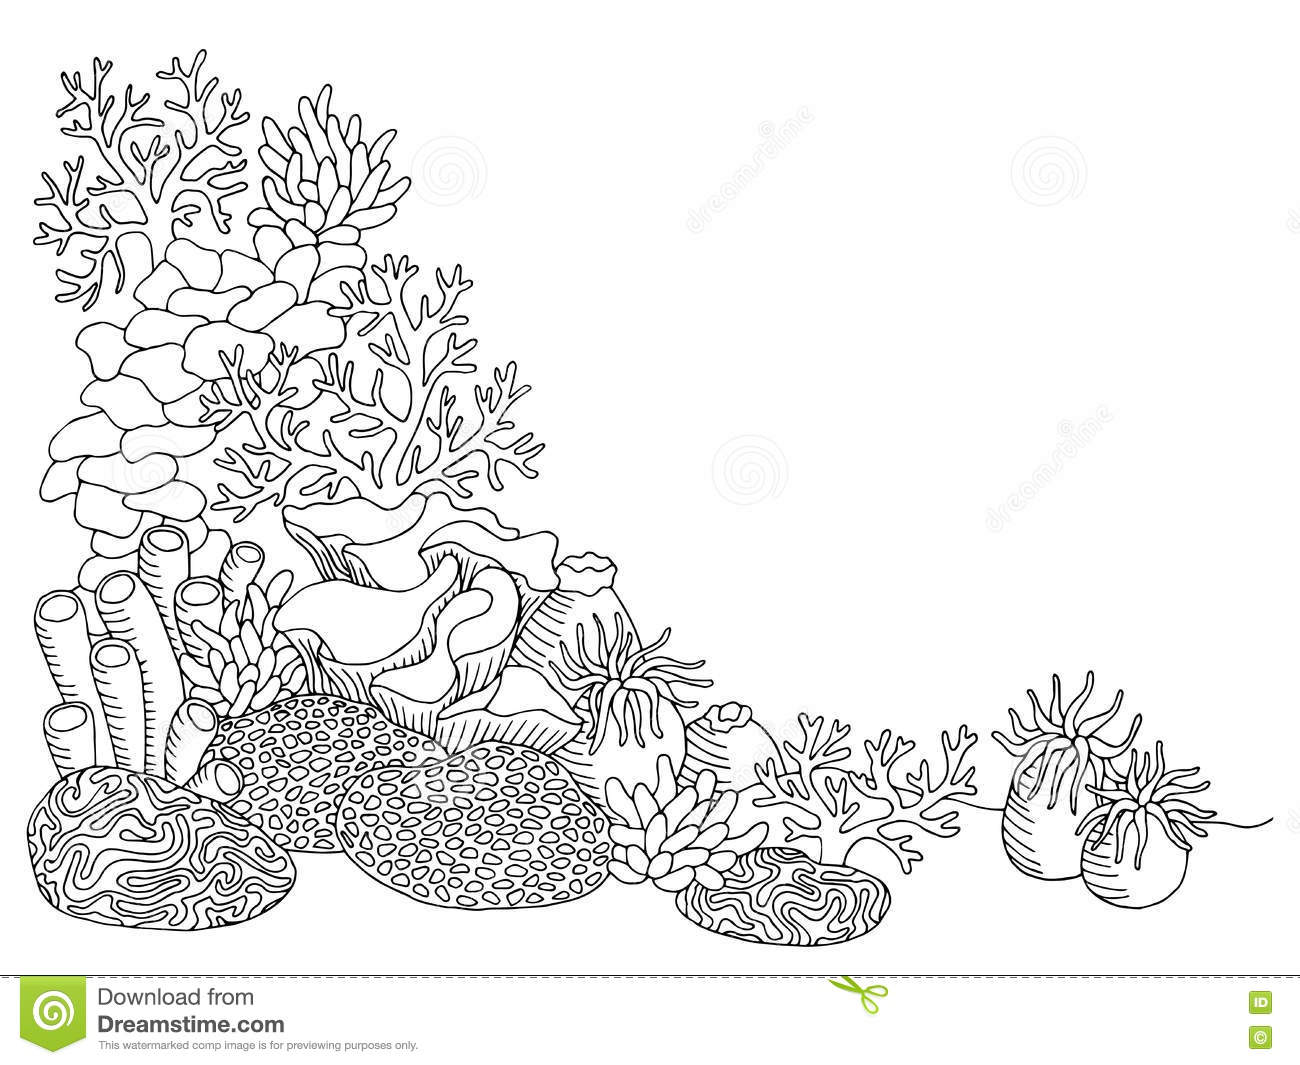 1463 Coral free clipart.